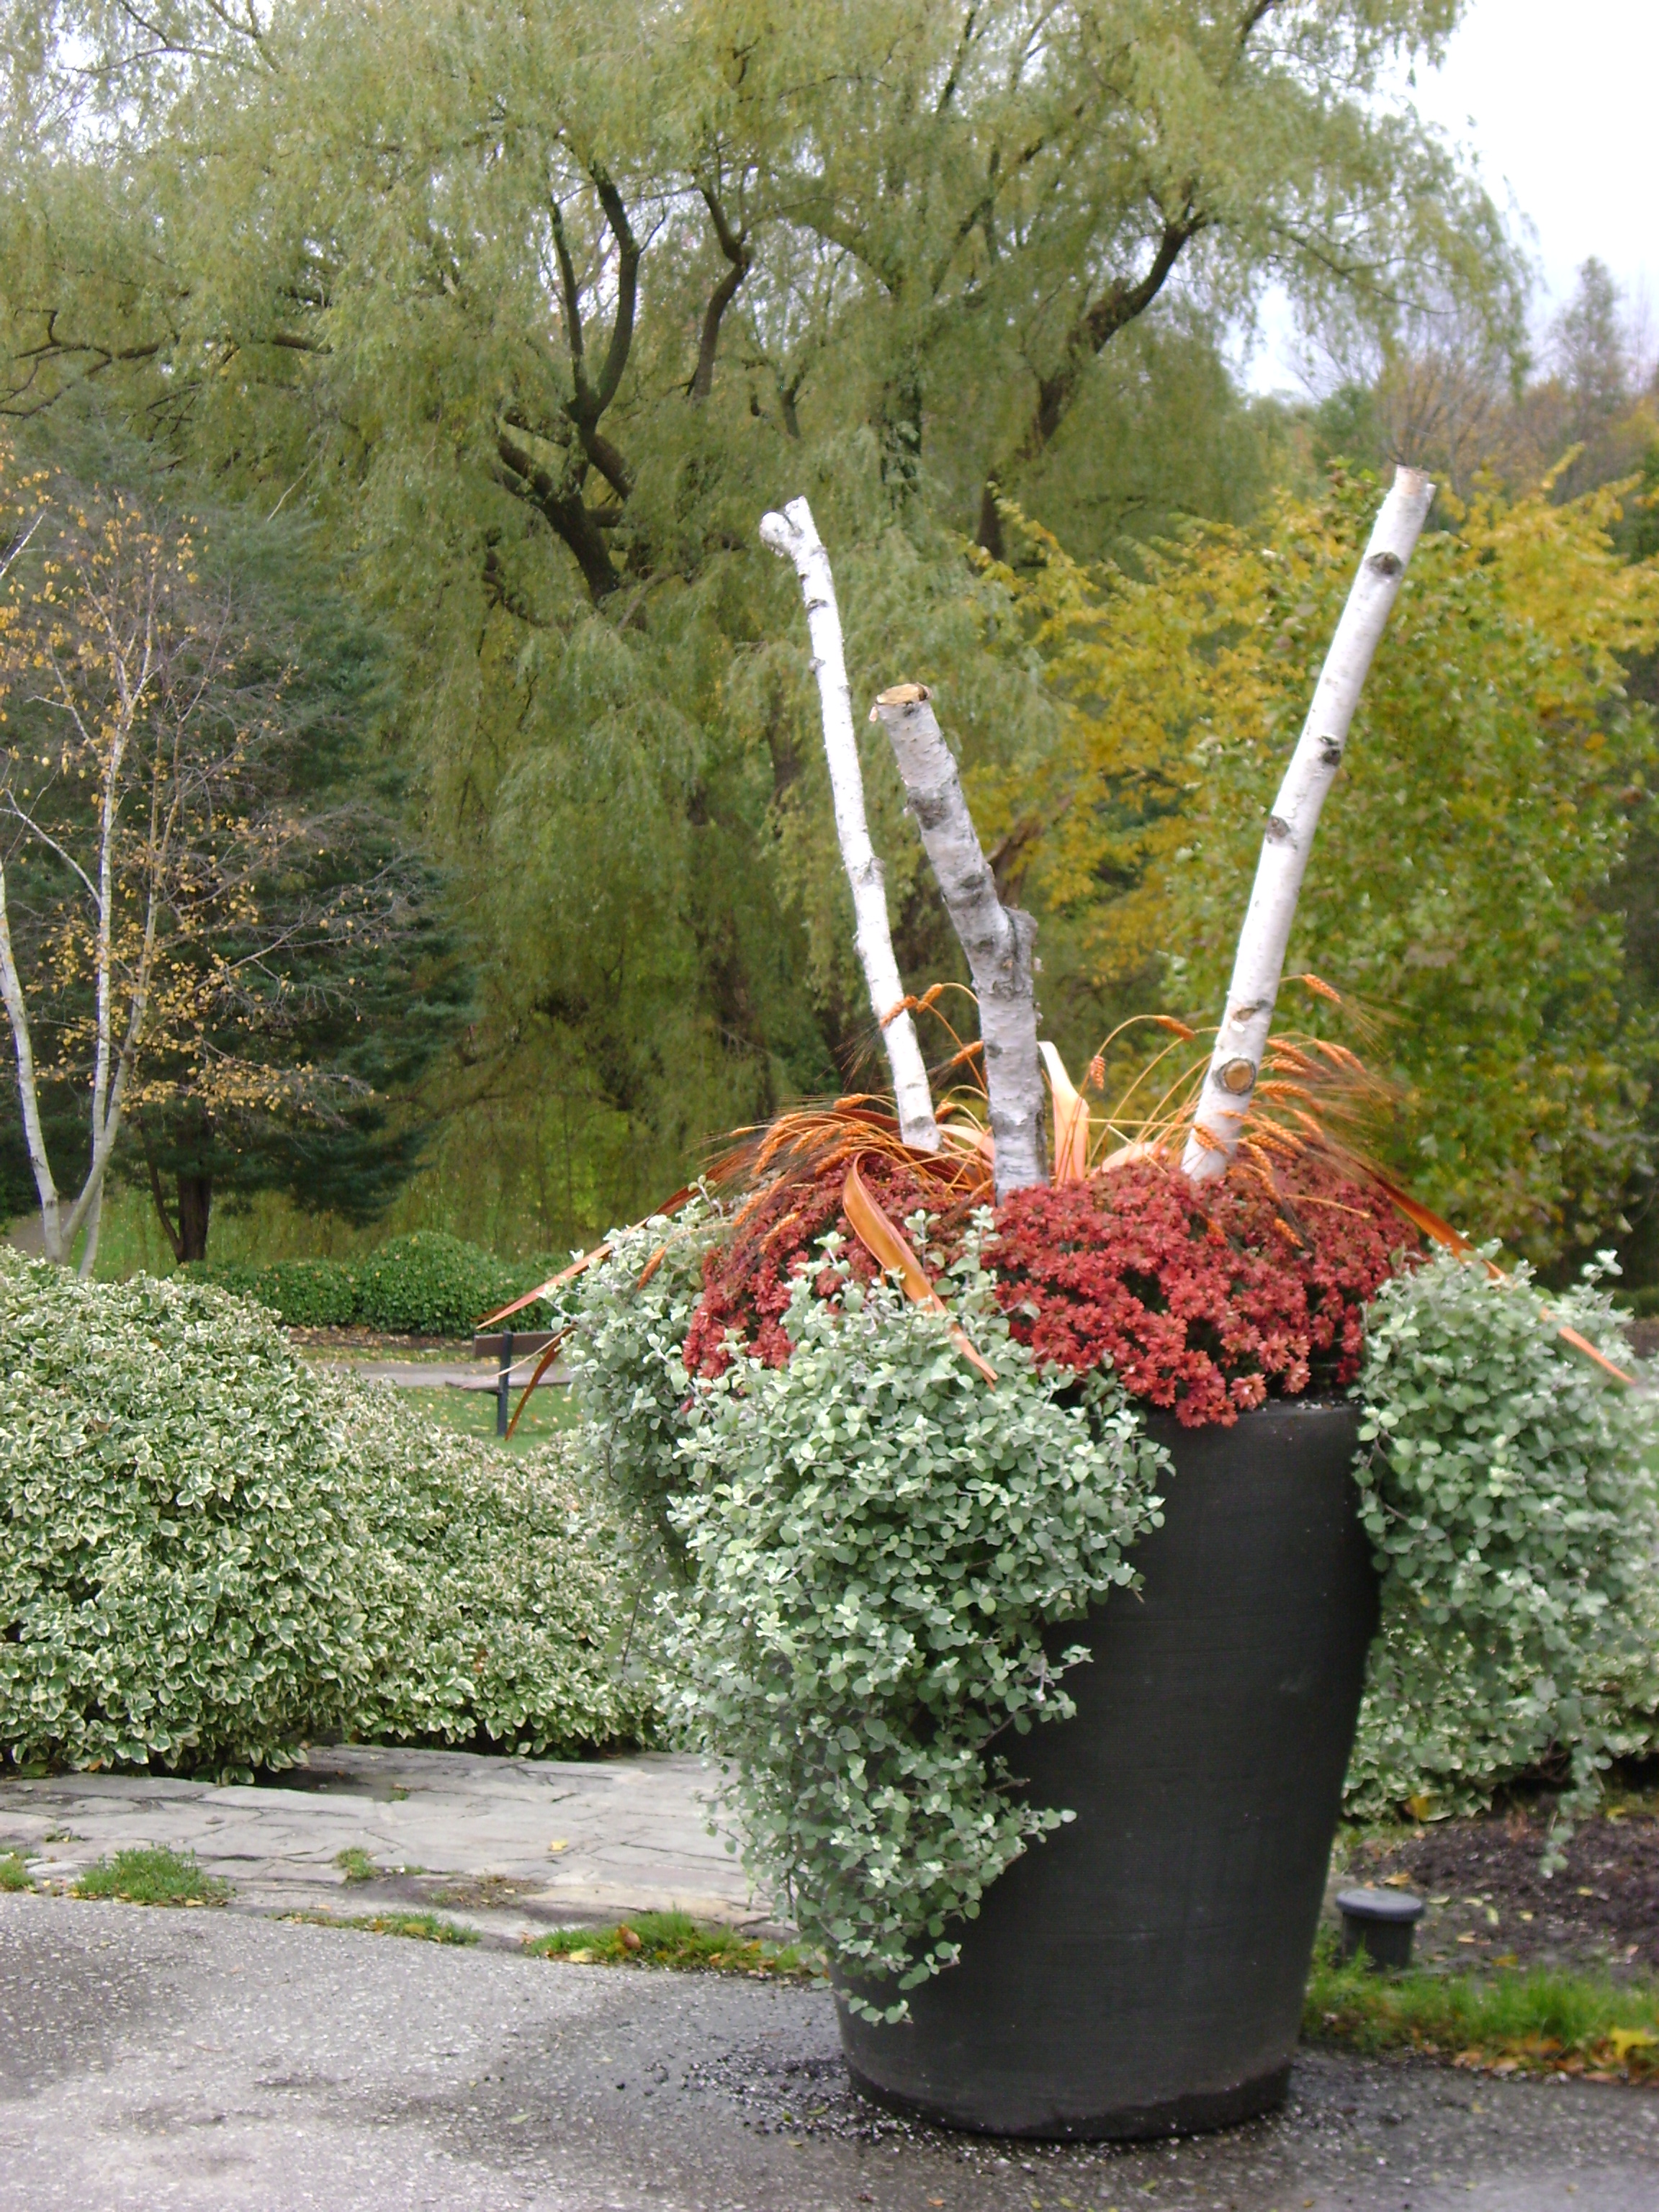 Outdoor Christmas Urns http://kilbournegrove.wordpress.com/tag/outdoor-urns/